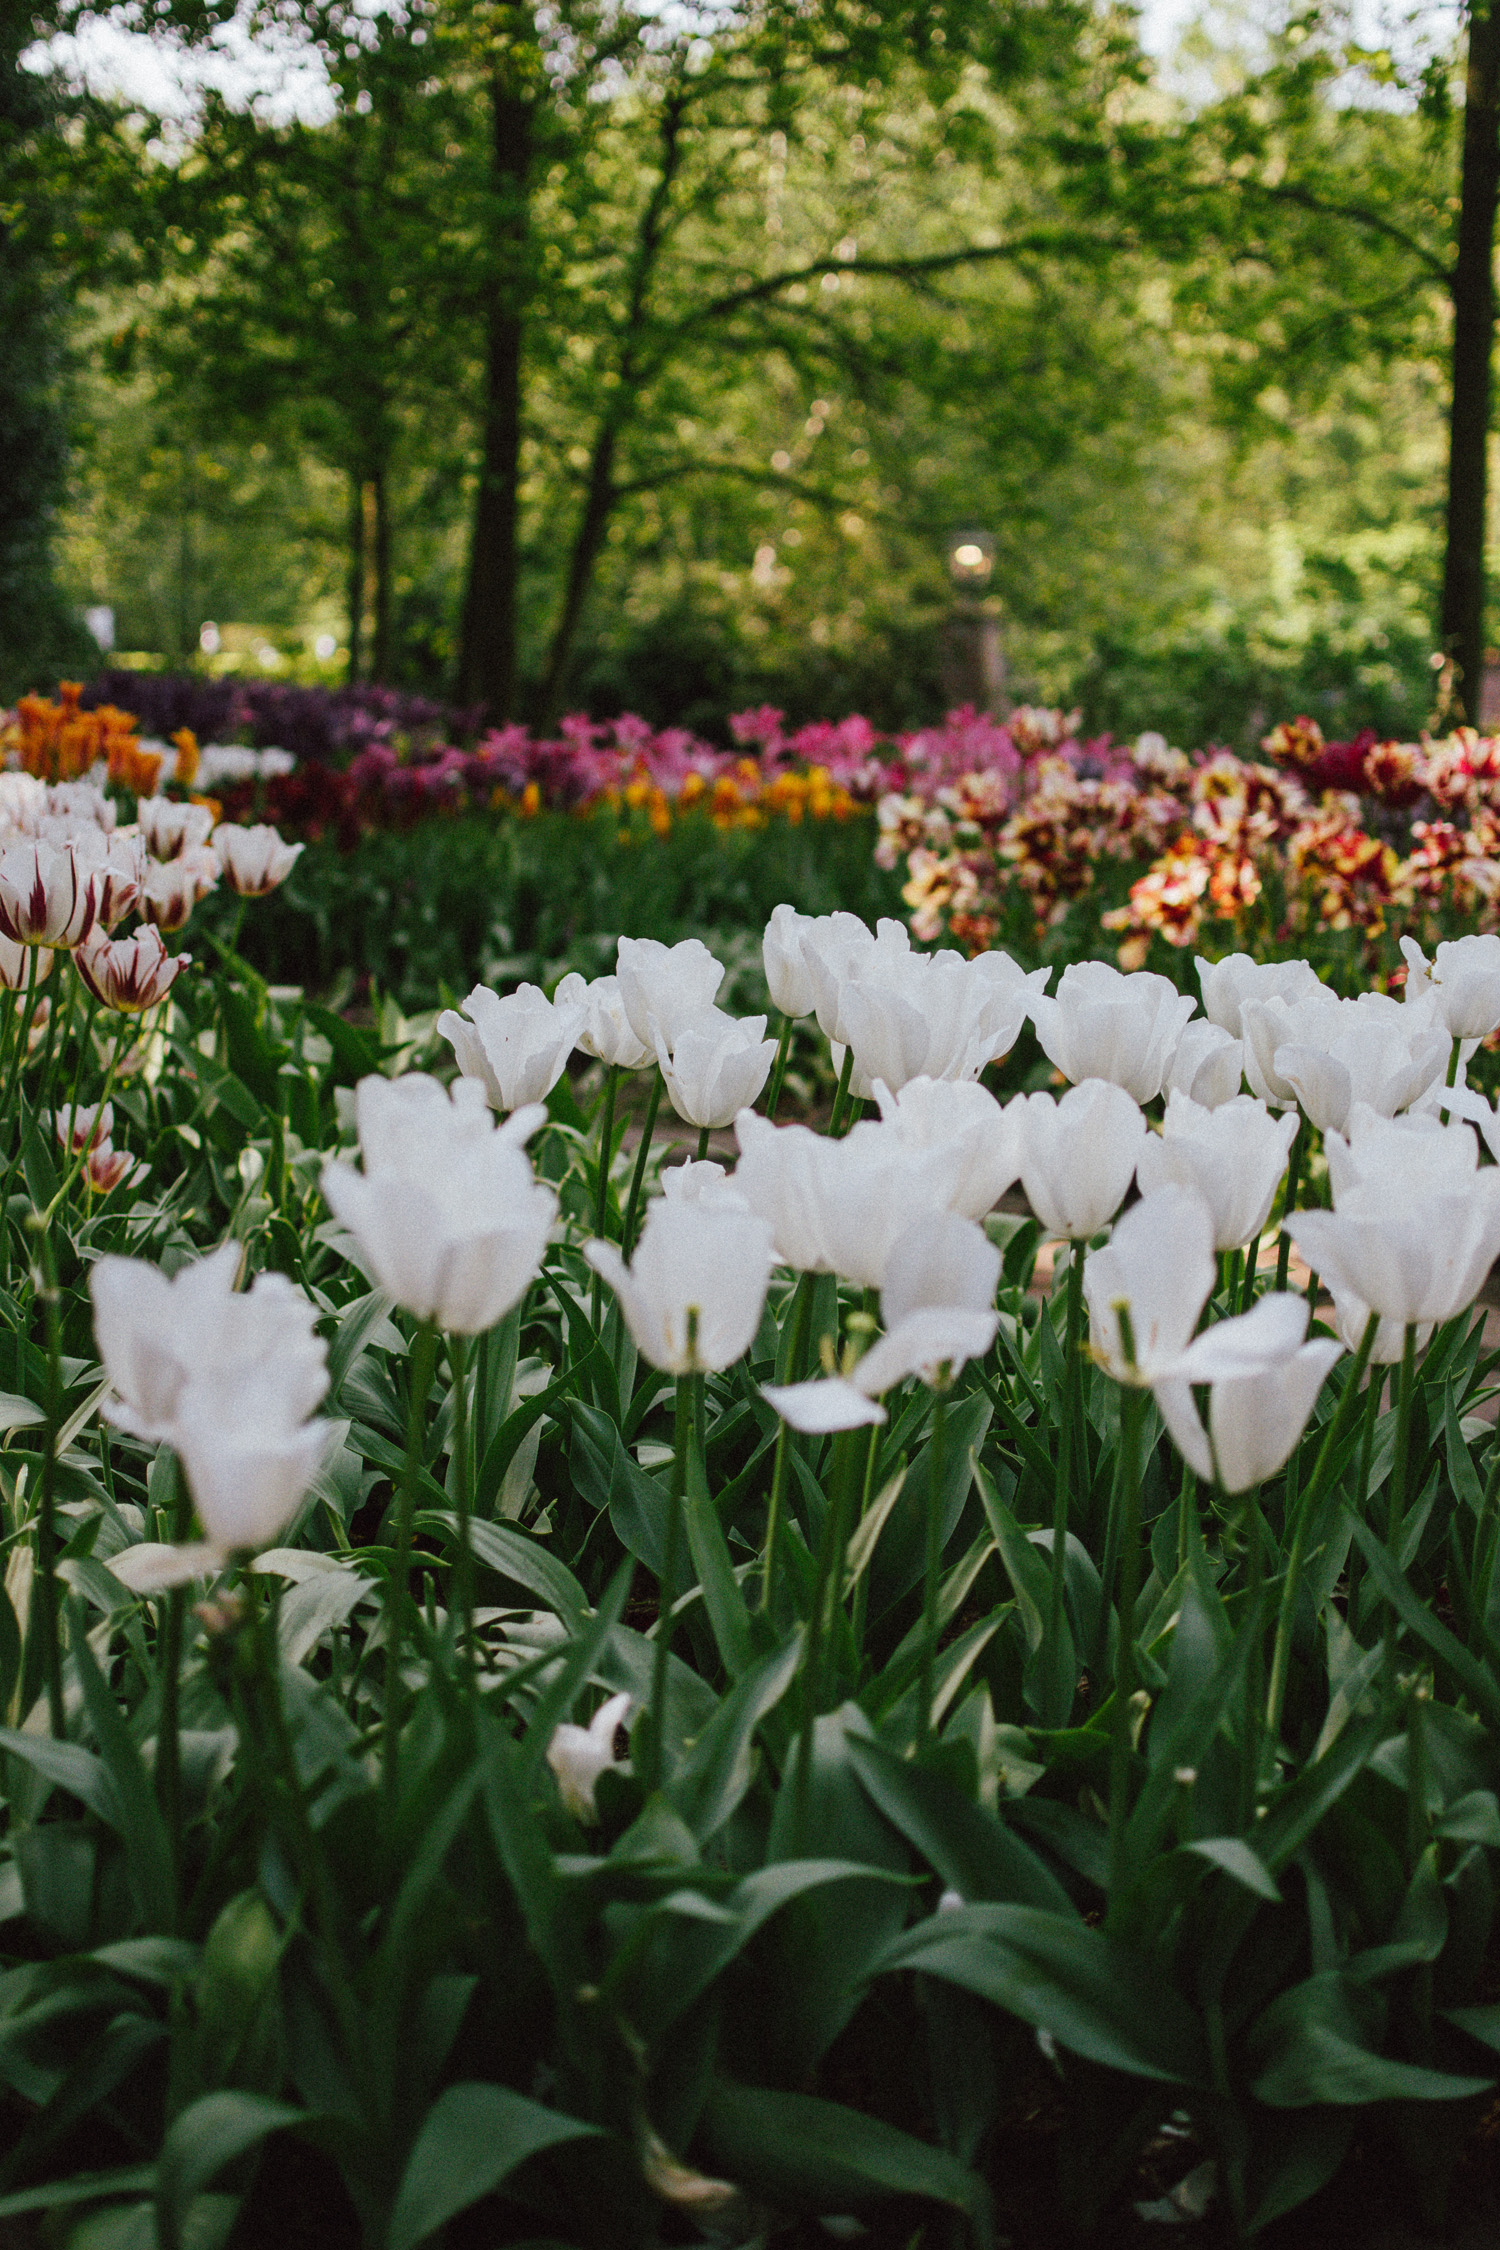 The Best Time To Visit Keukenhof And The Popular Tulip